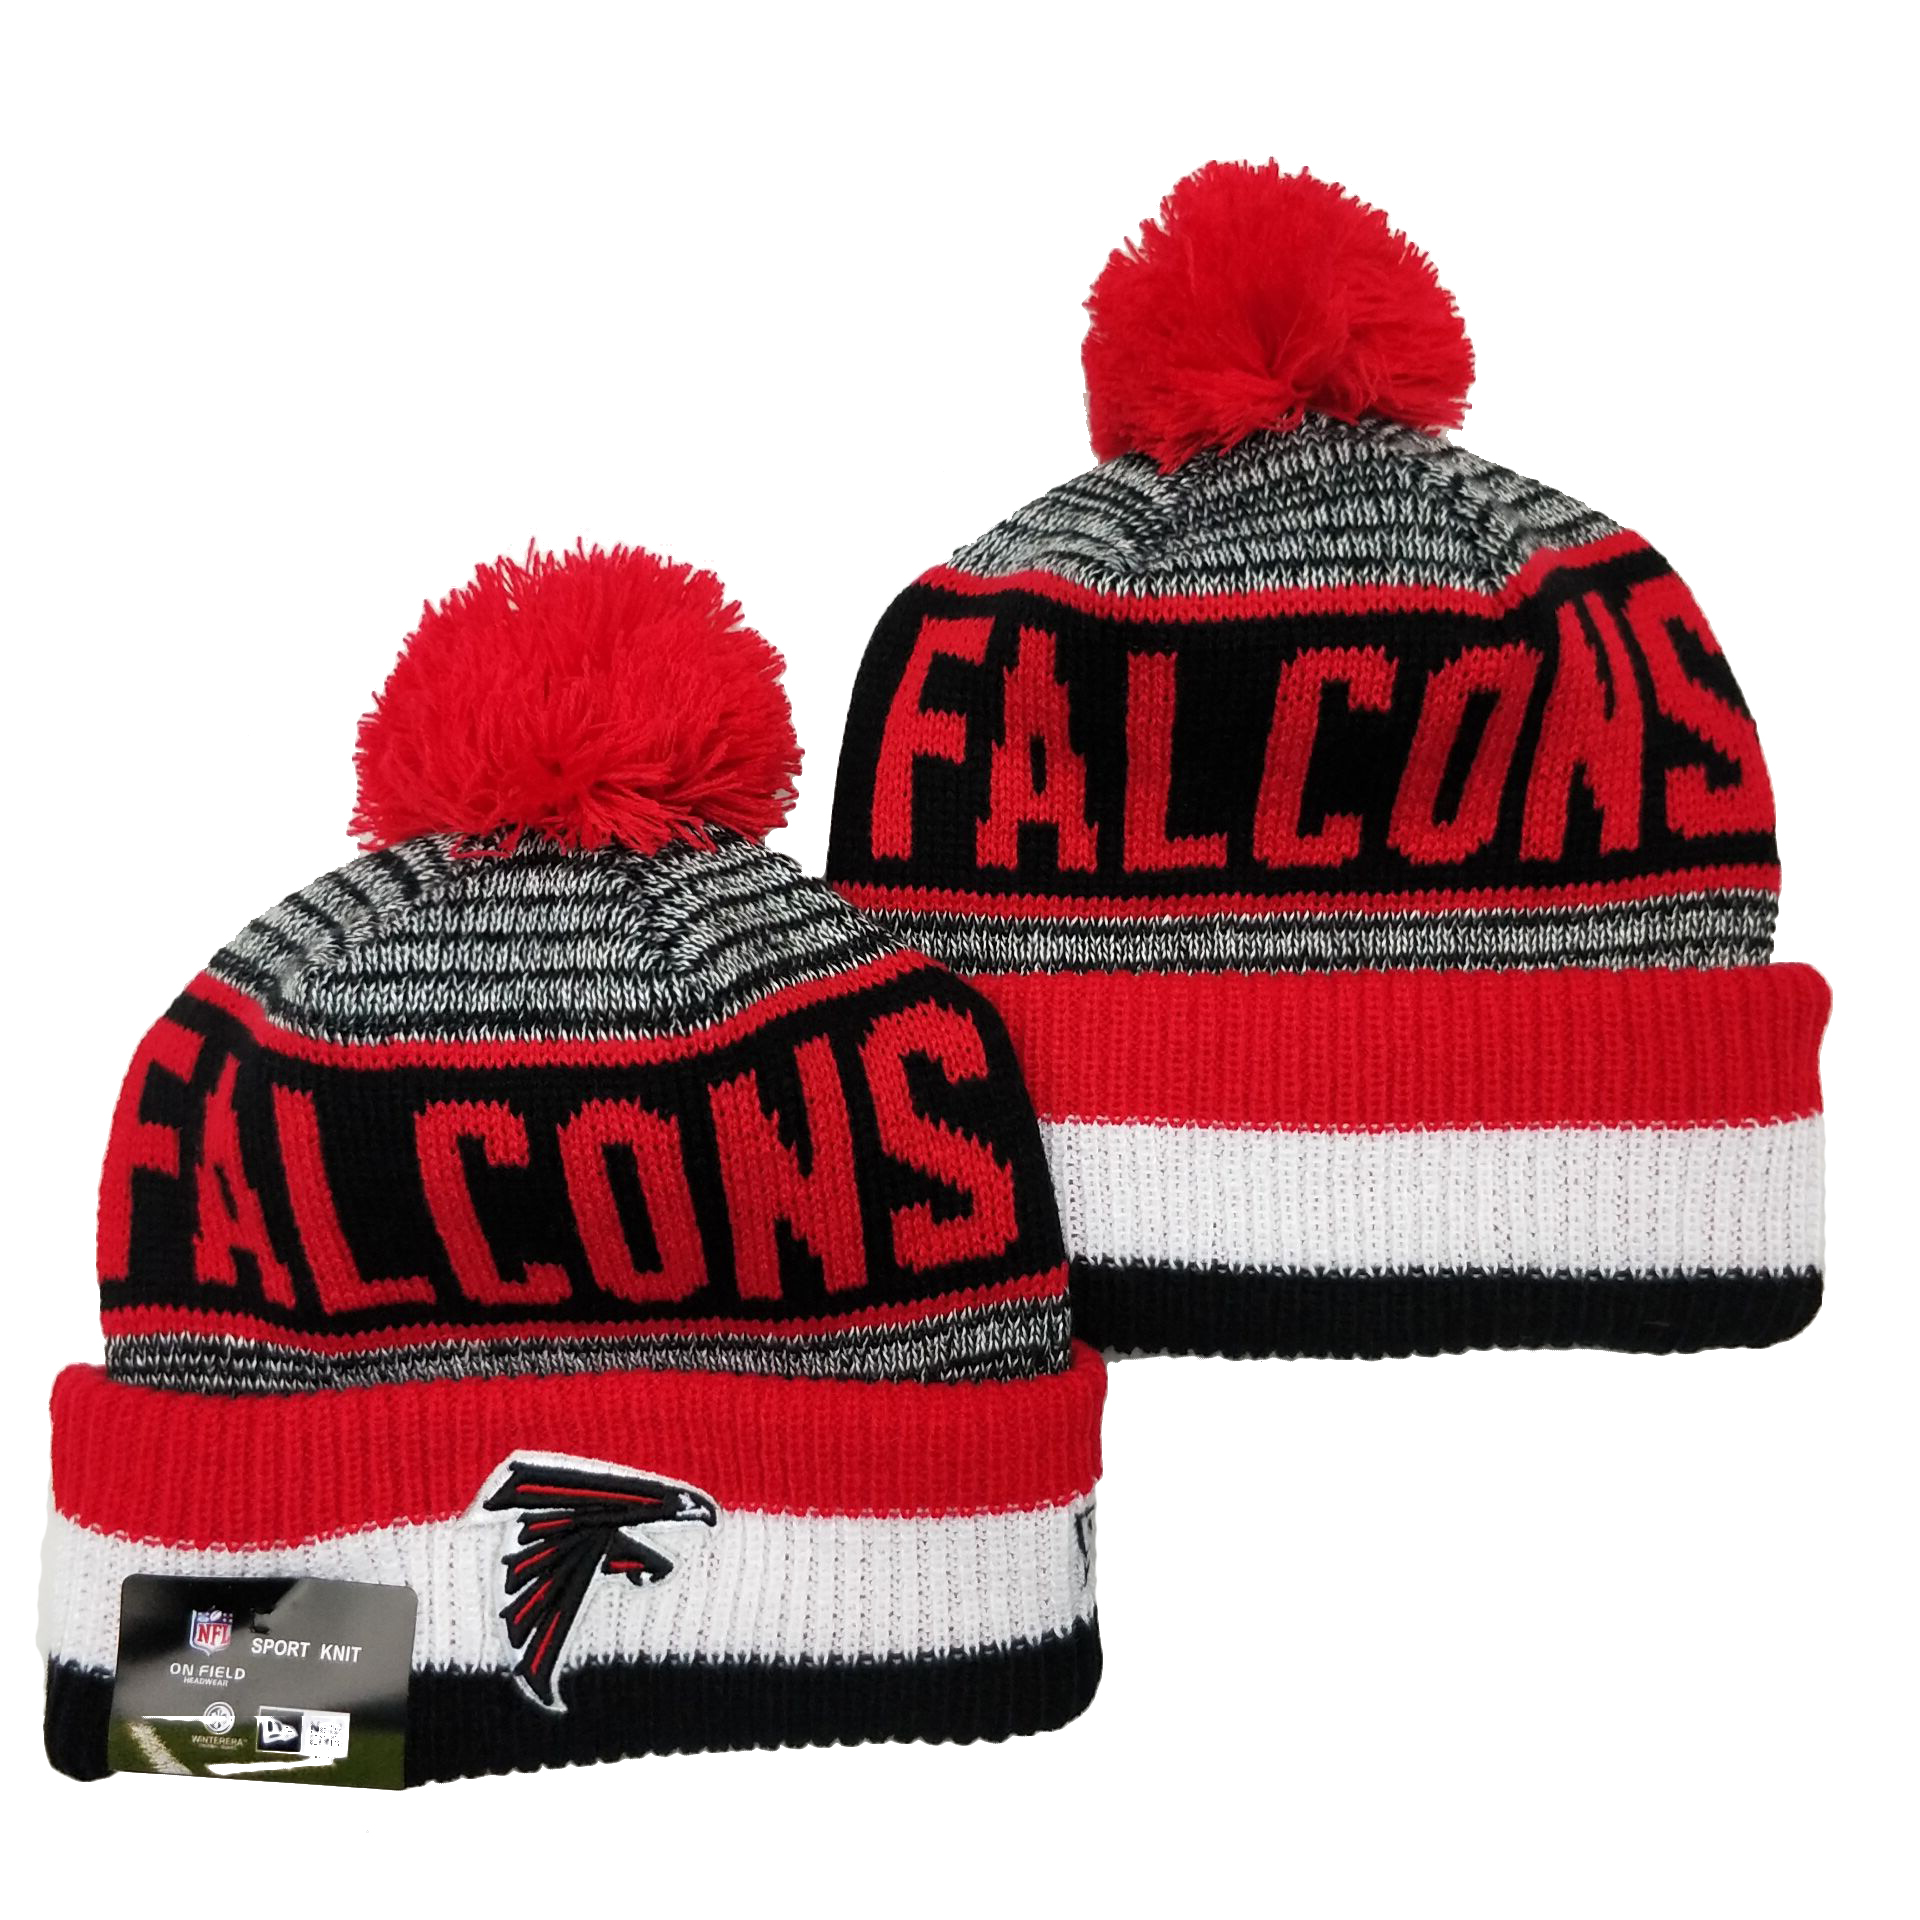 Atlanta Falcons Knit Hats 064